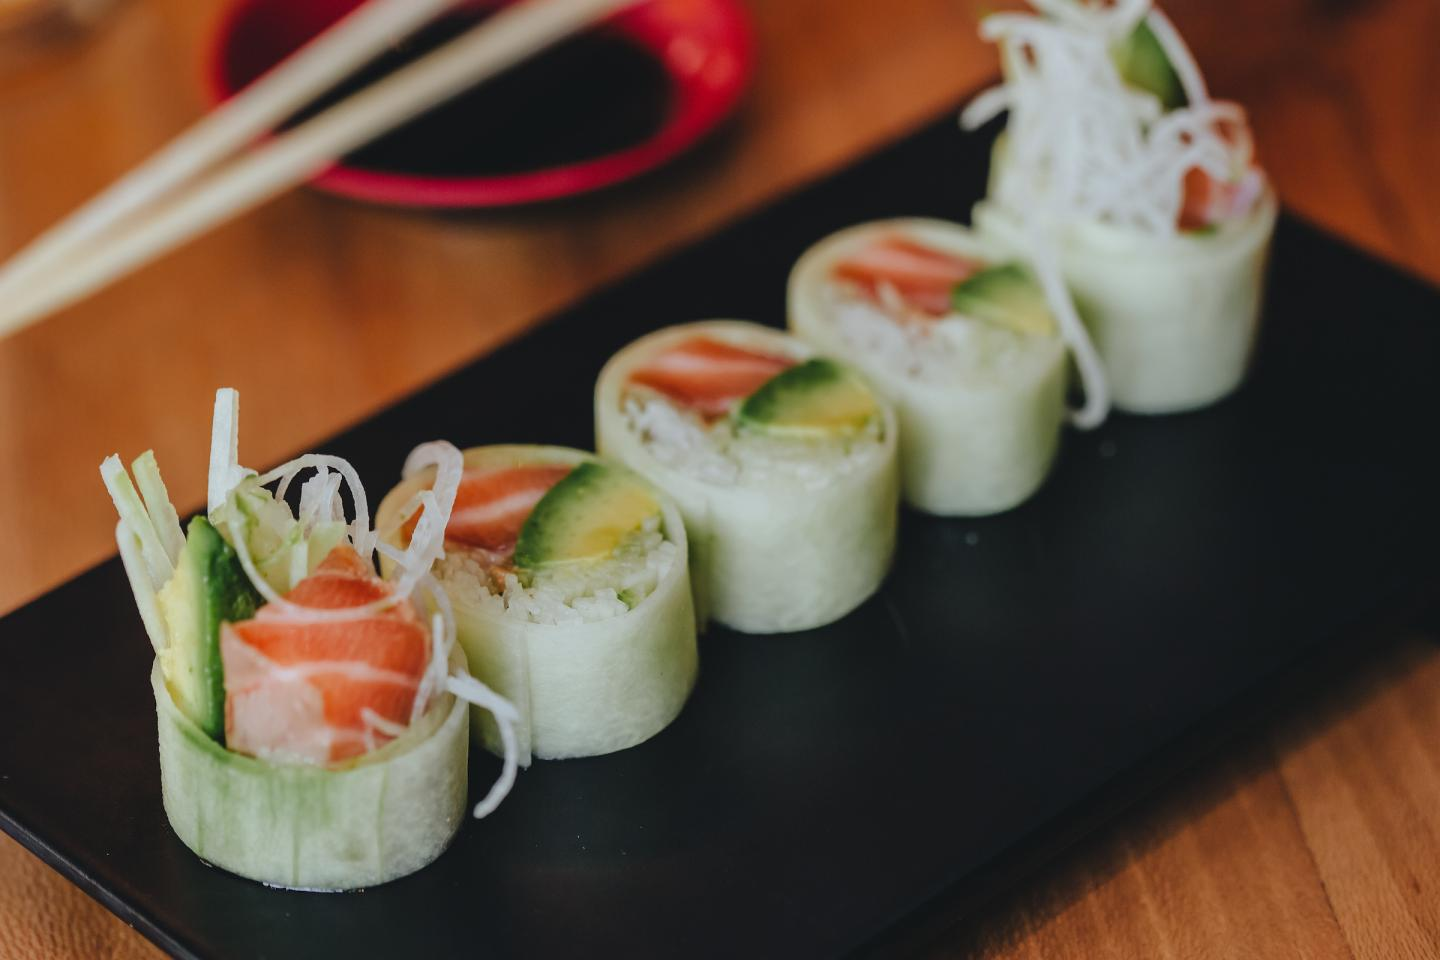 Cucumber wrapped sushi from sushi san